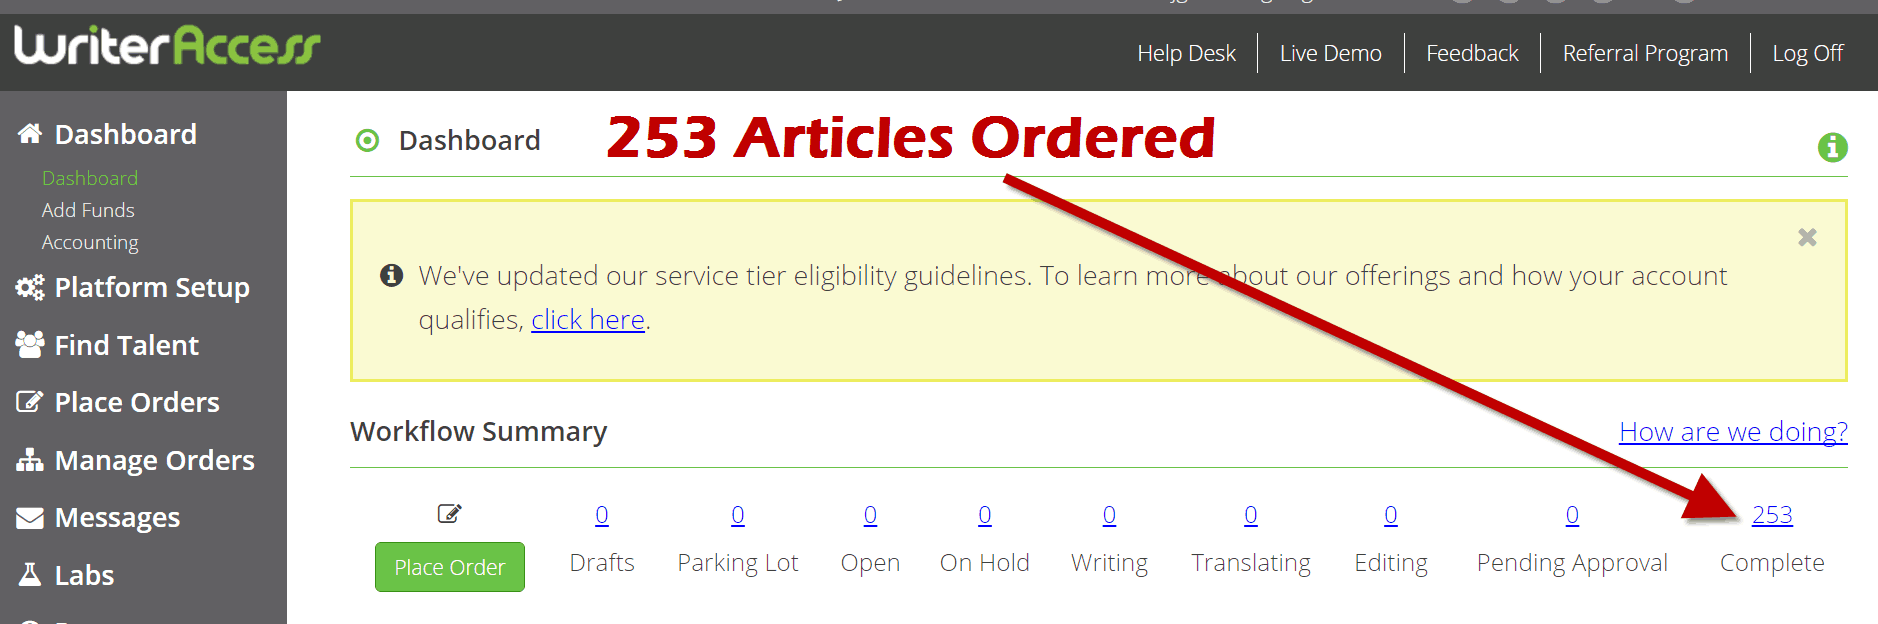 Writer Access Orders